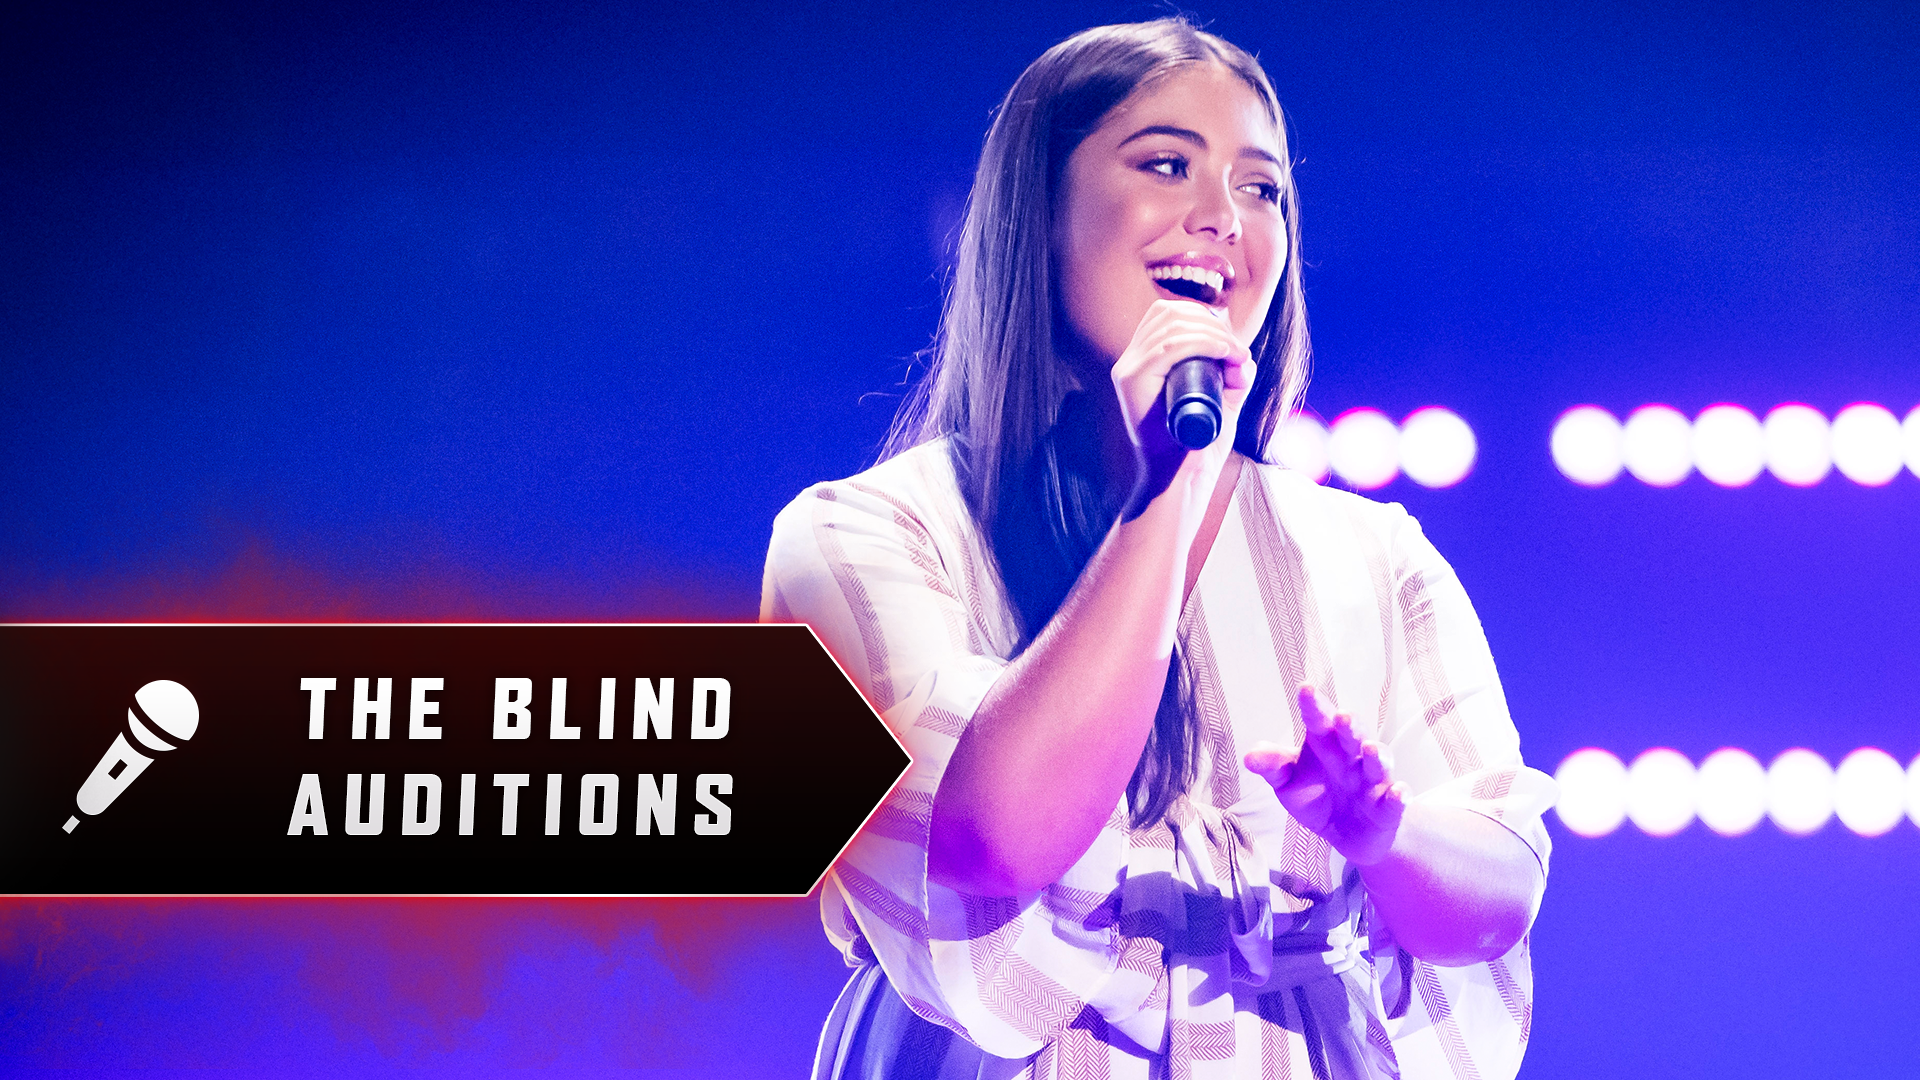 Blind Audition: Chloe Buchan 'My Heart Will Go On'